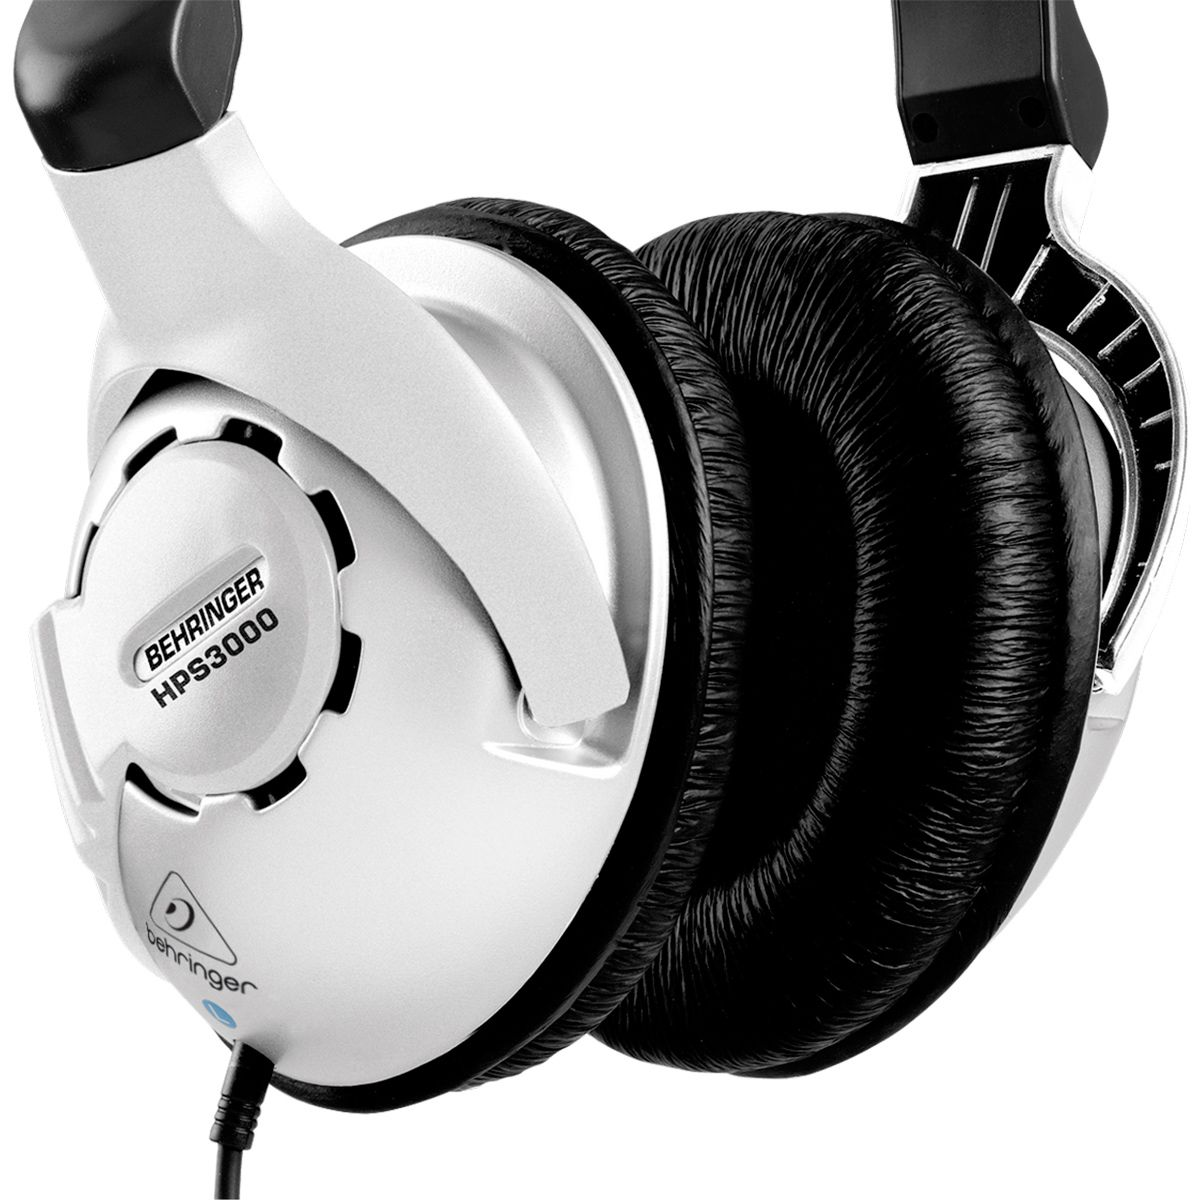 Fone de Ouvido Behringer HPS3000 High Performance Over Ear